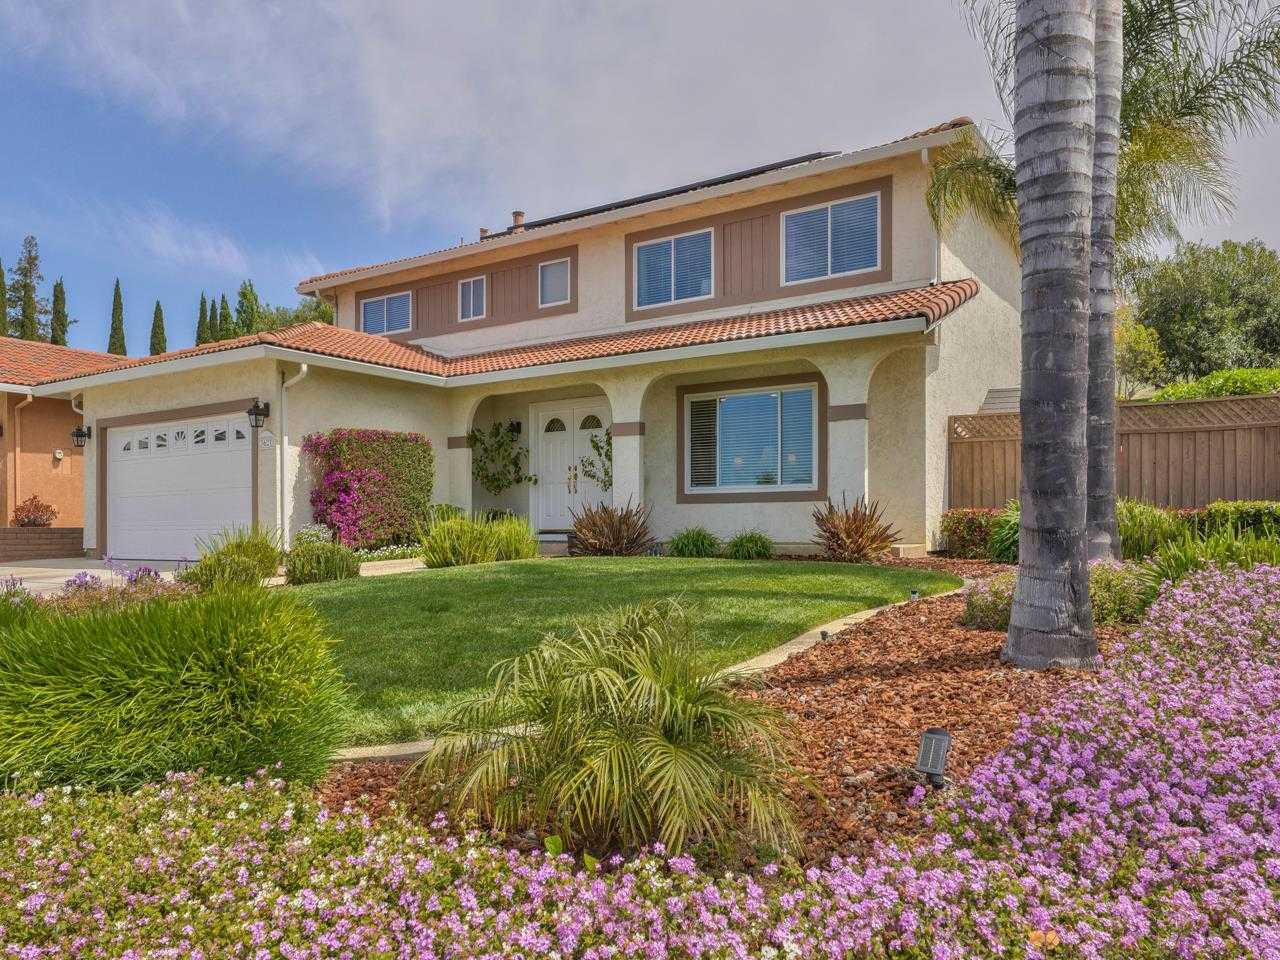 $1,525,000 - 5Br/3Ba -  for Sale in San Jose